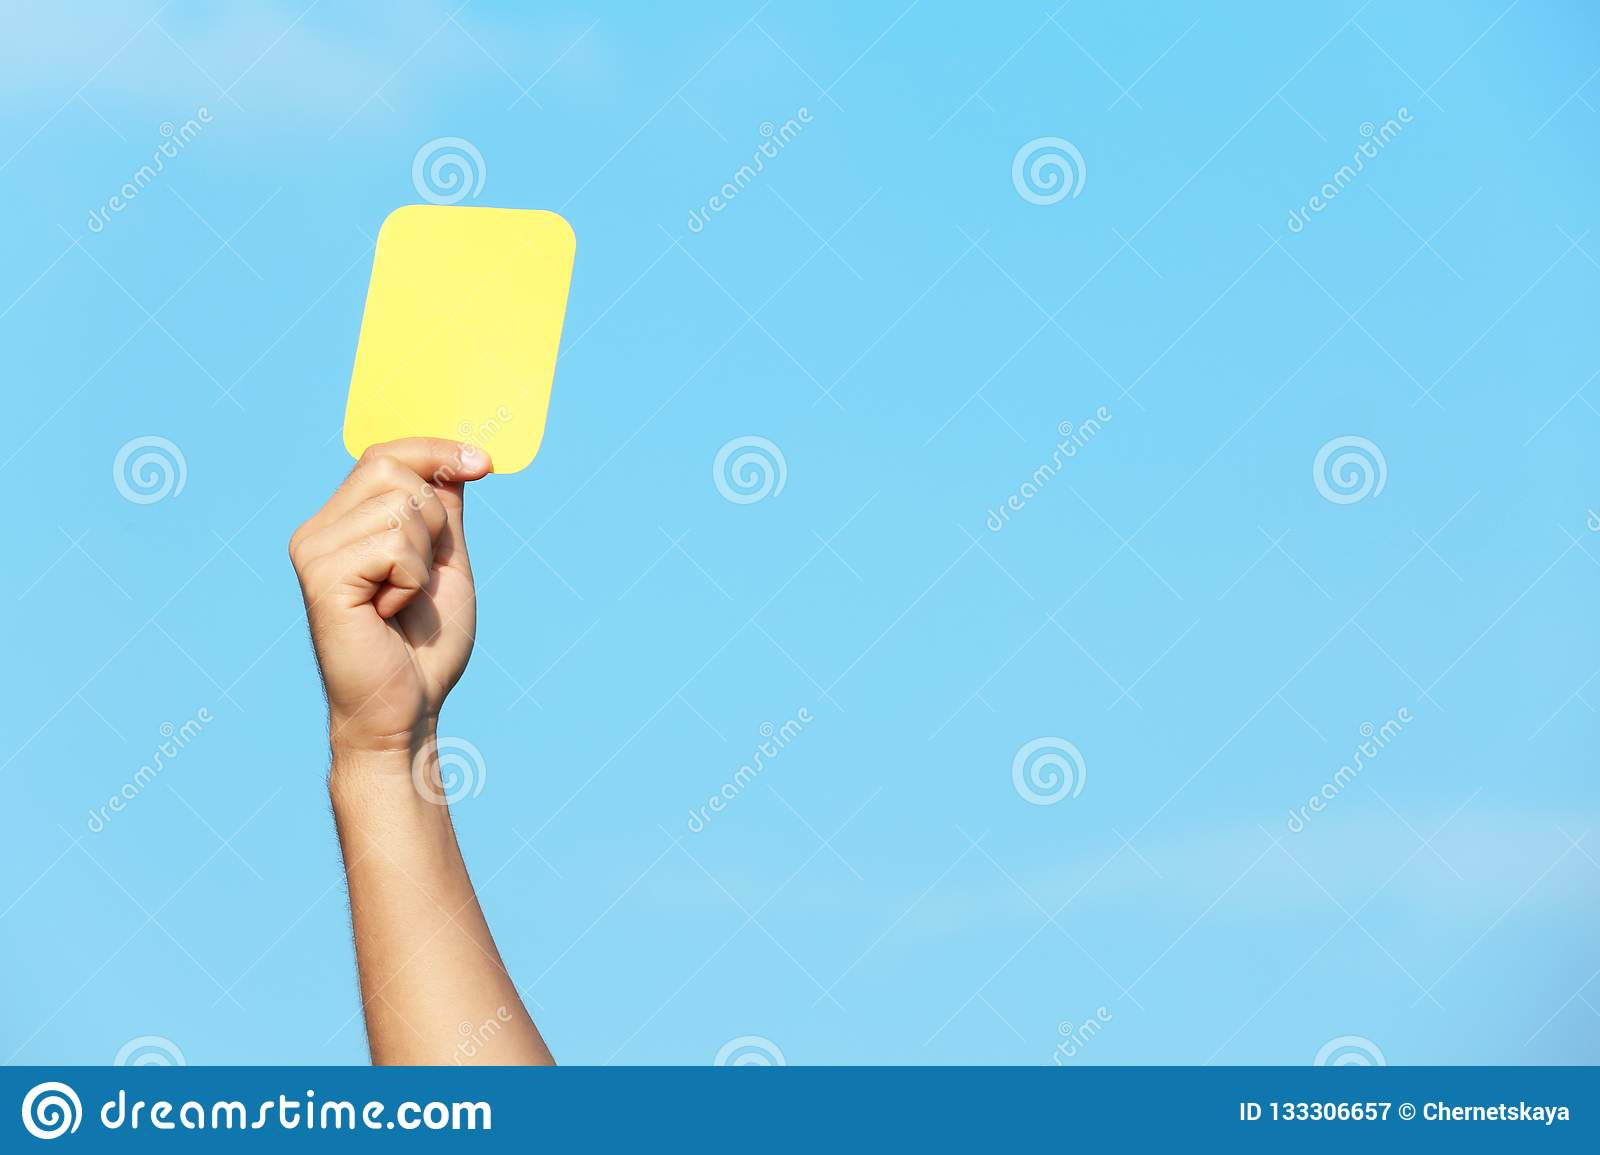 Football referee showing yellow card against blue sky